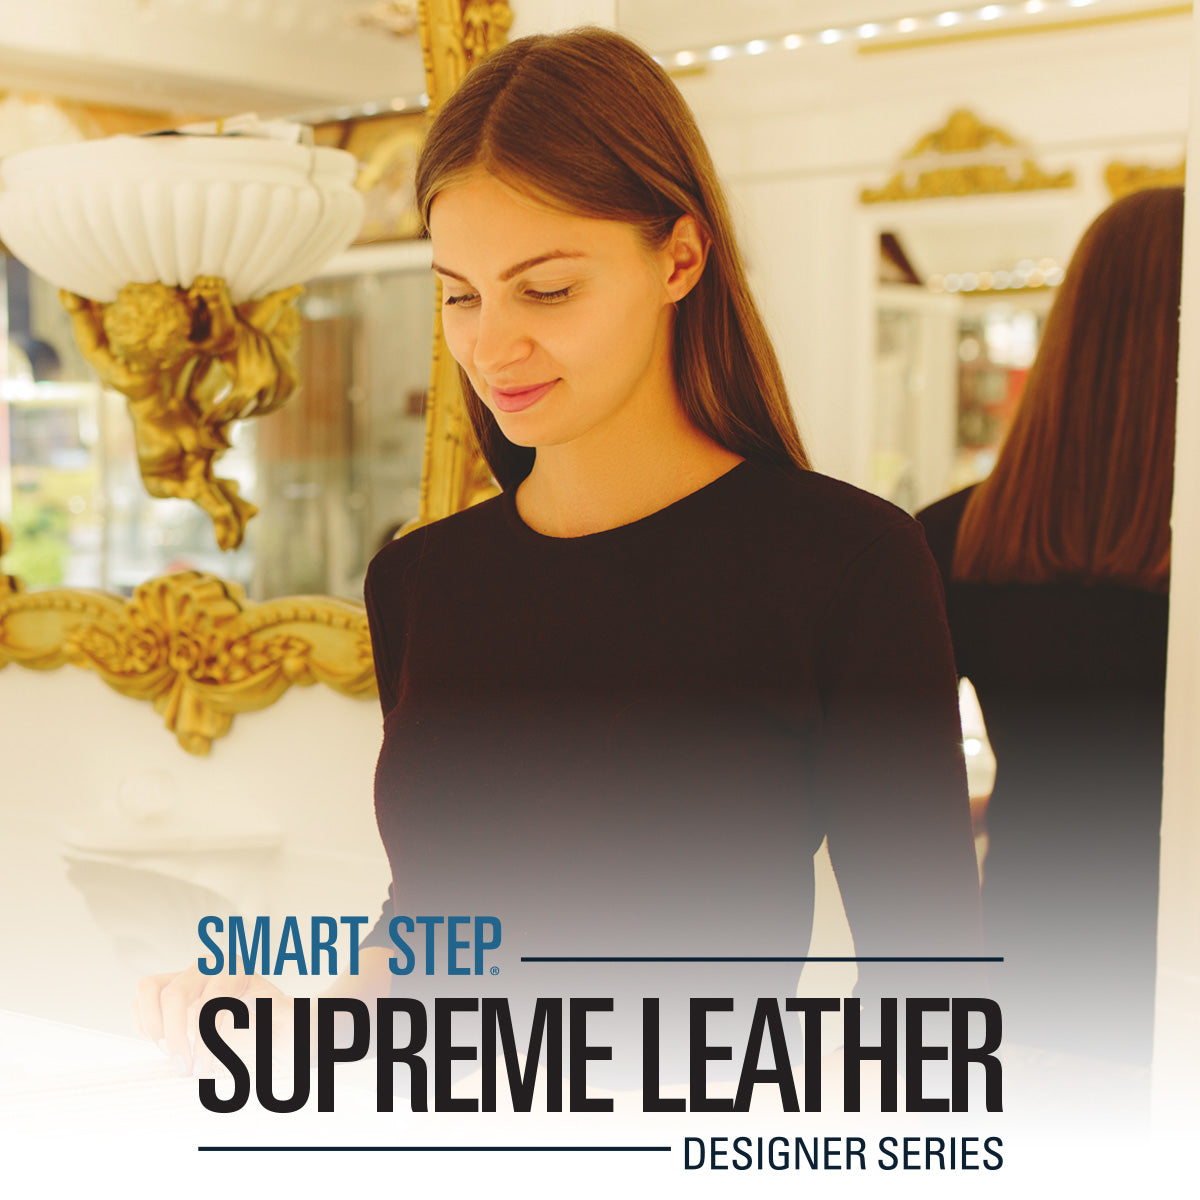 Smart Step Supreme Leather